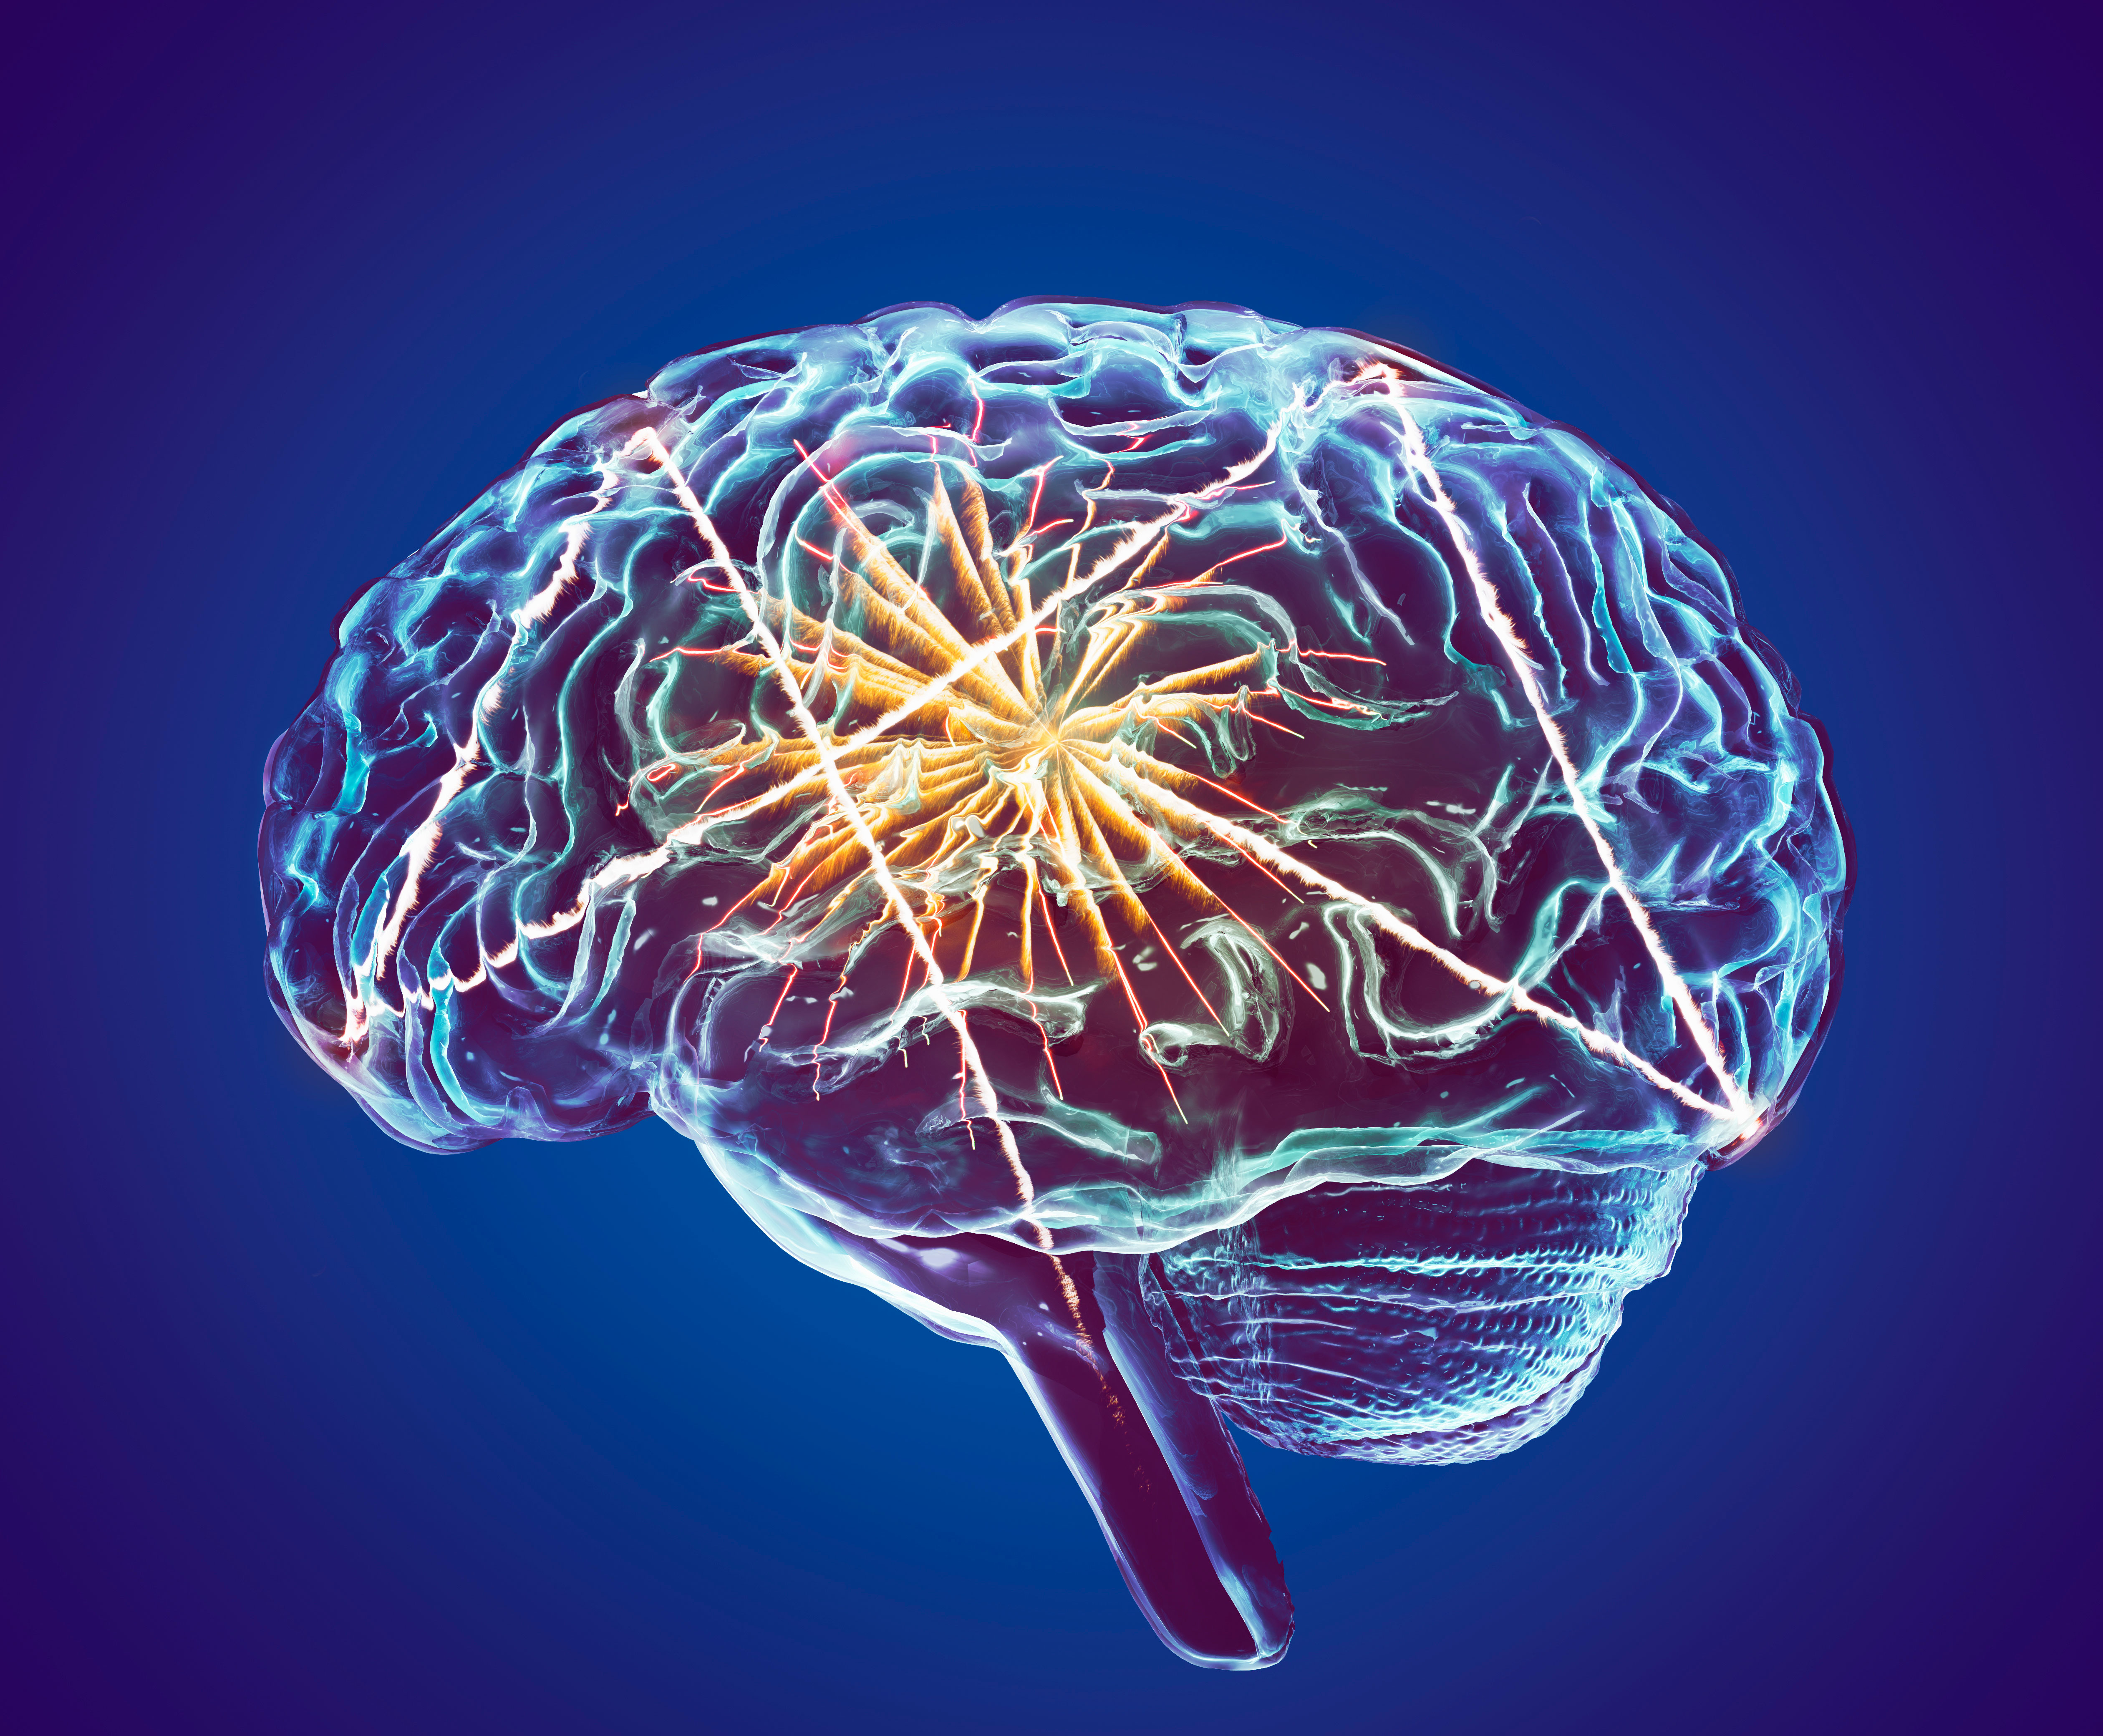 Not Too Late to Focus on LATE, an Overlooked Brain Disease